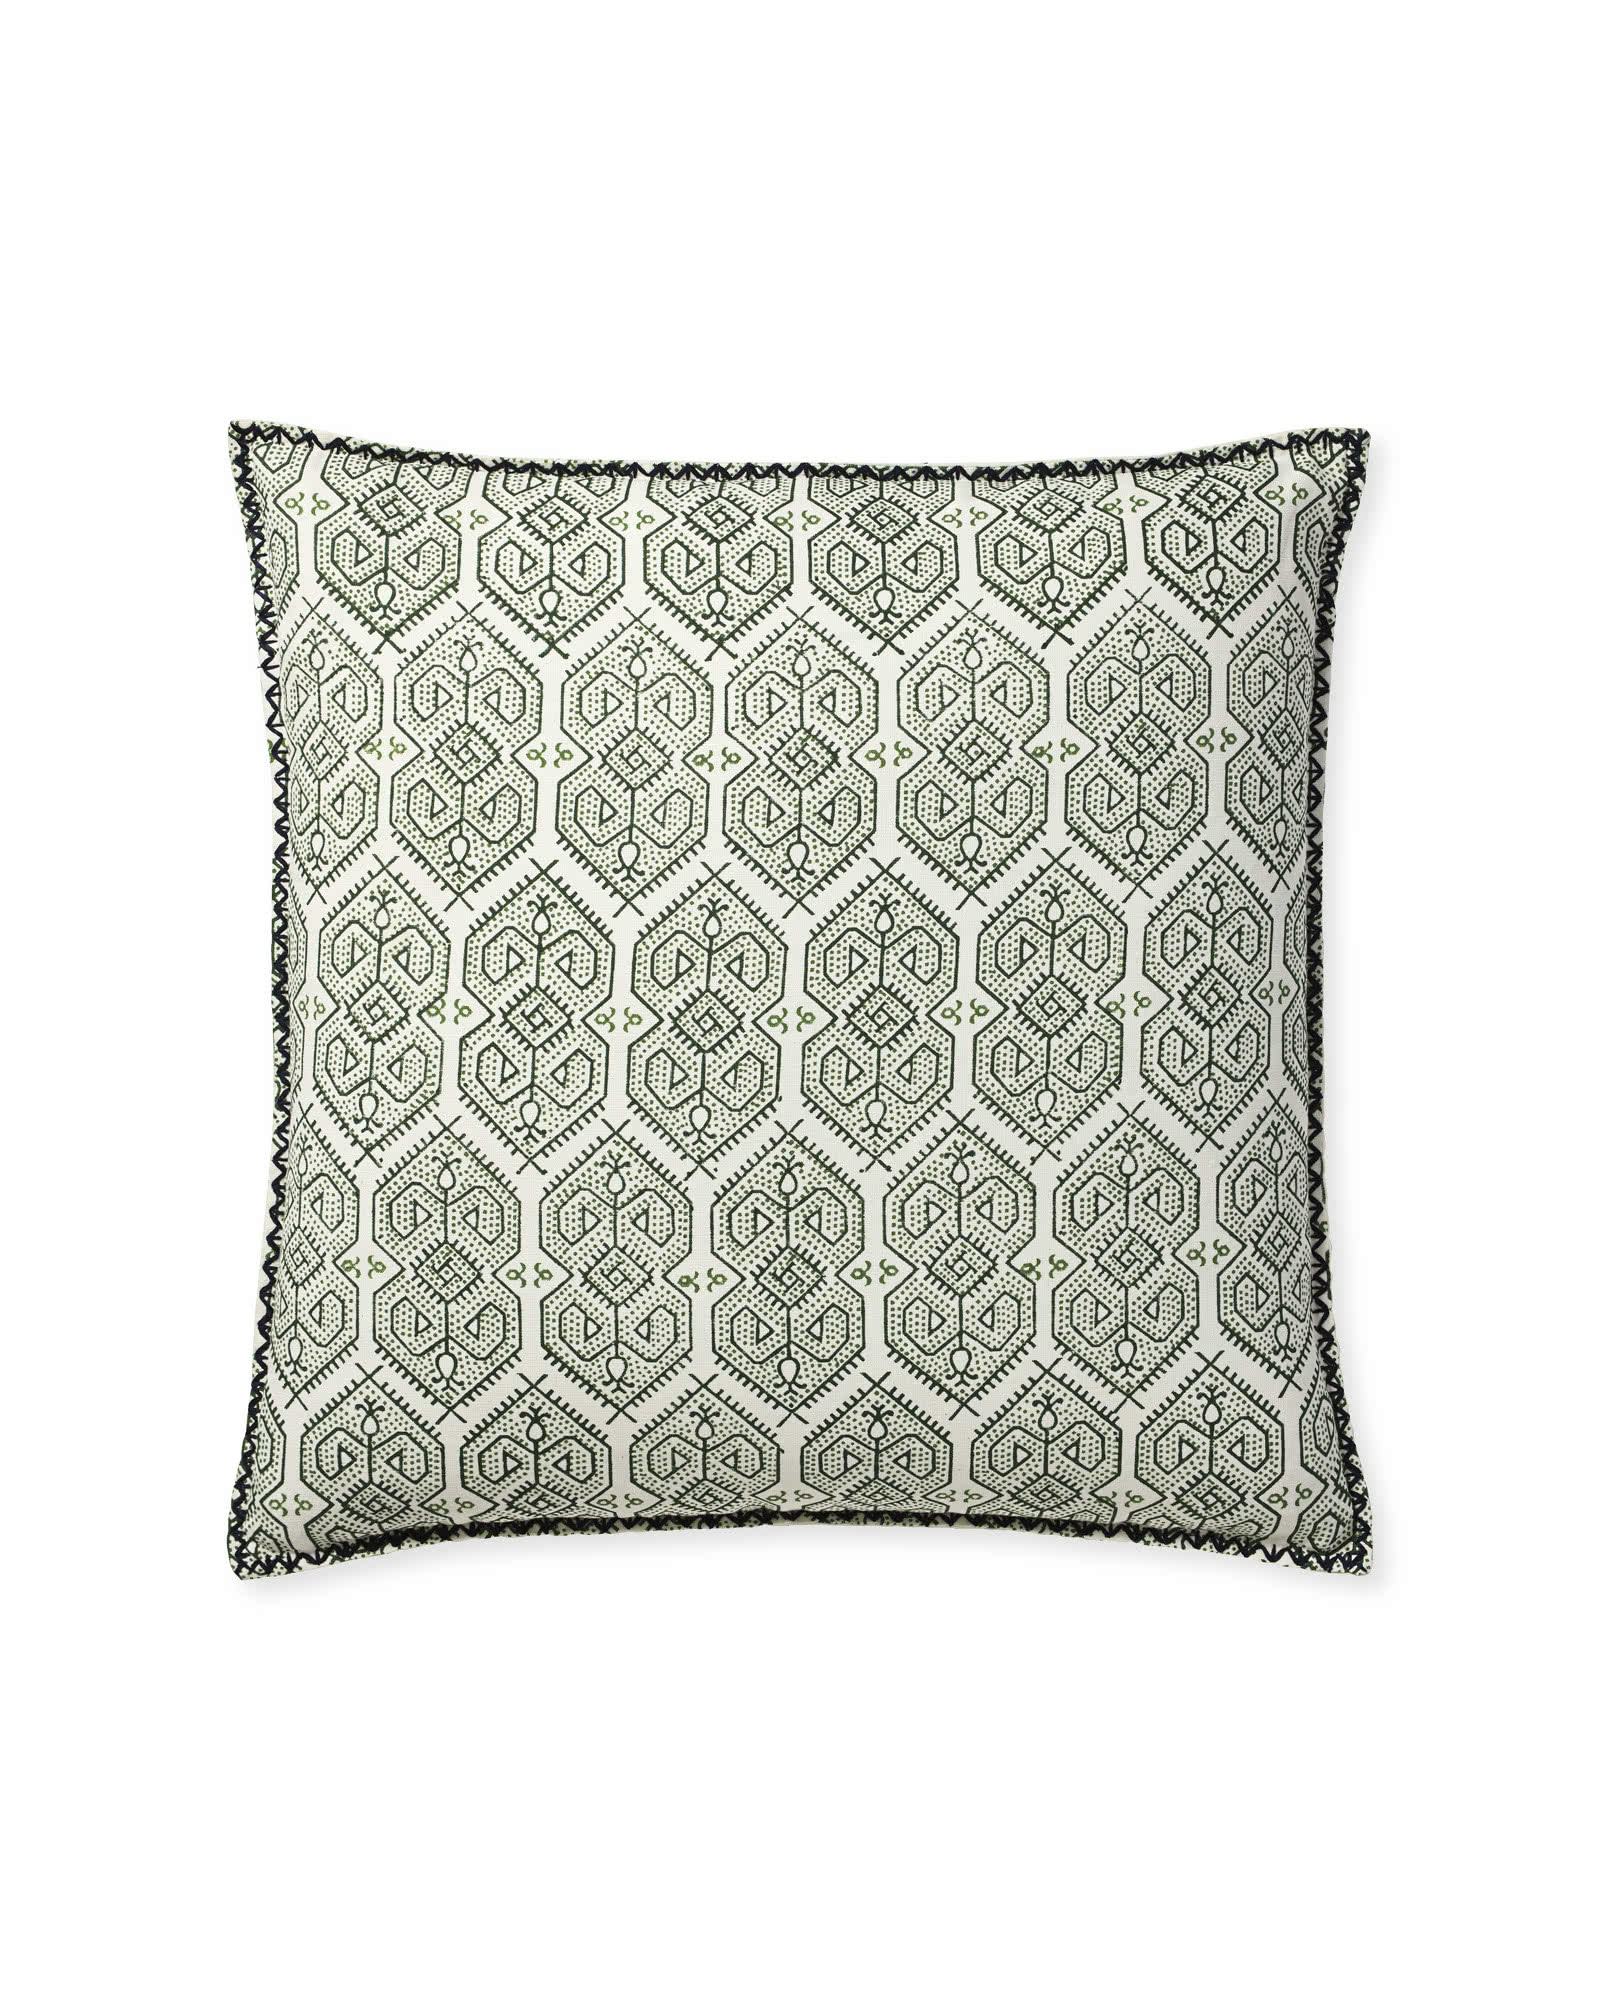 Jamesport Pillow Cover, Palm Green